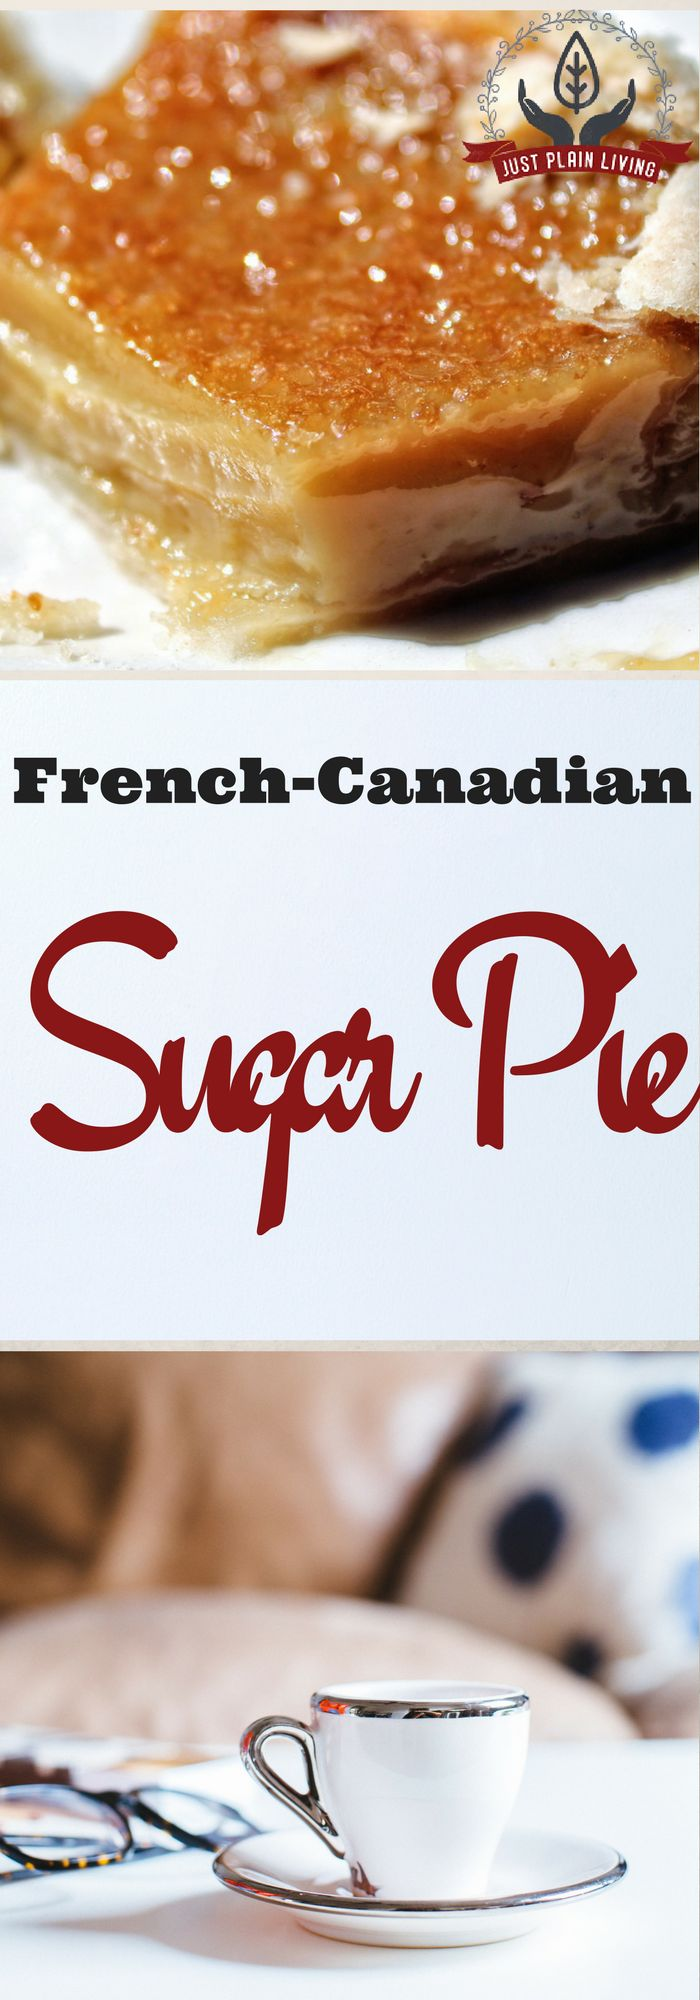 French Canadian sugar pie - delicious, decadent, but also incredibly easy to make. You might already have the ingredients in your pantry.